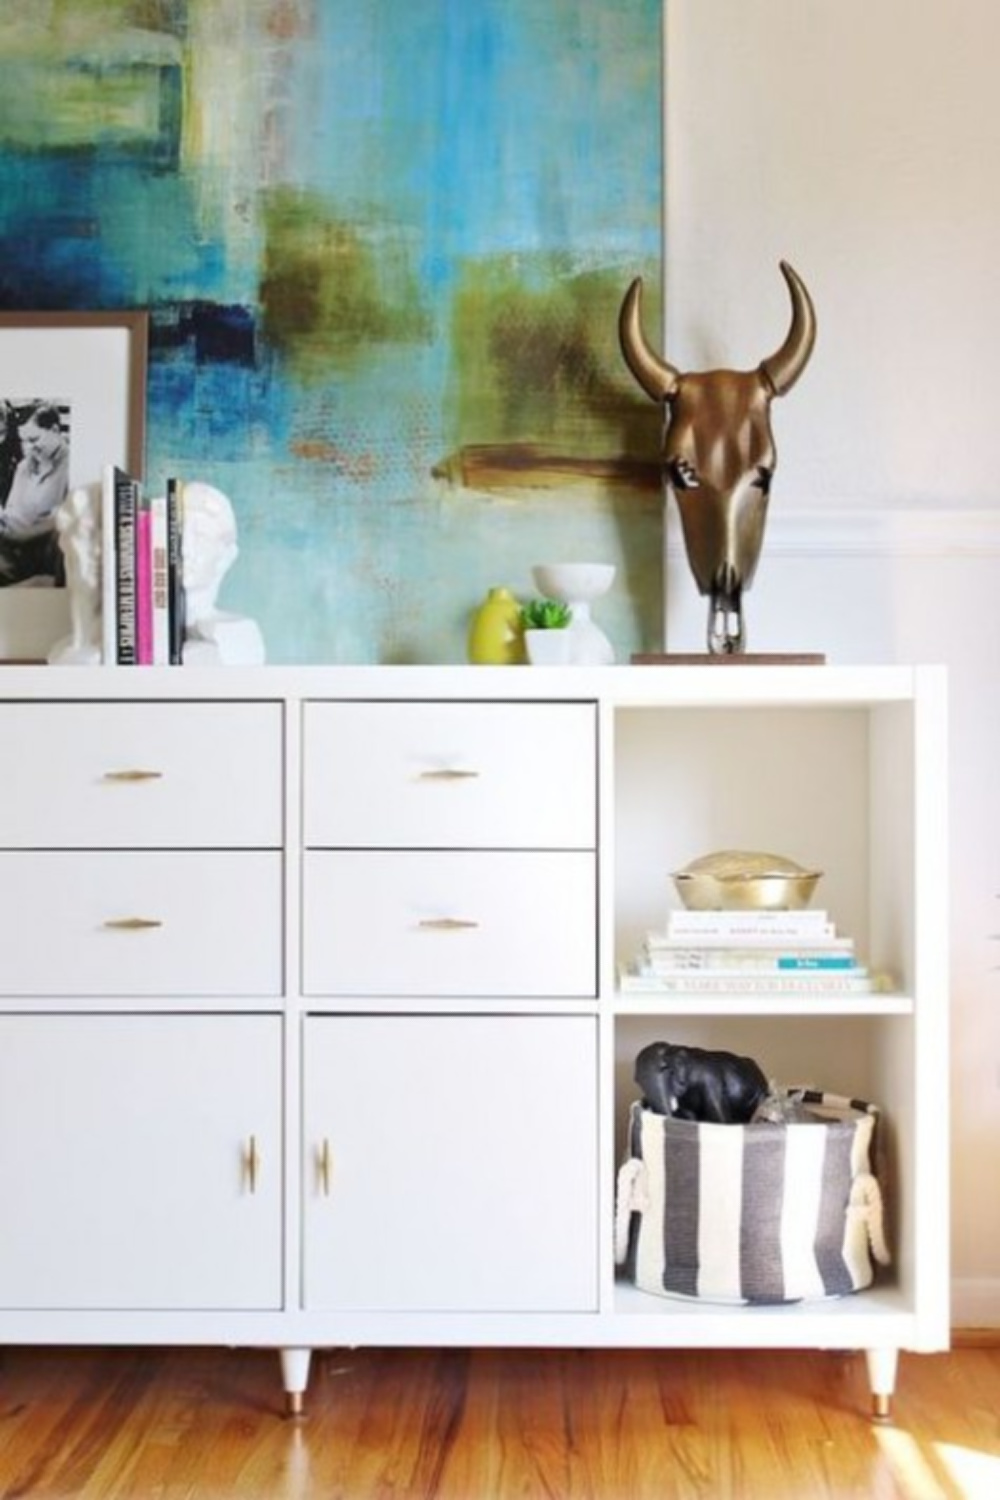 Dresser with Kallax in a bedroom for storage and display. #kallaxhacks #ikeahacks